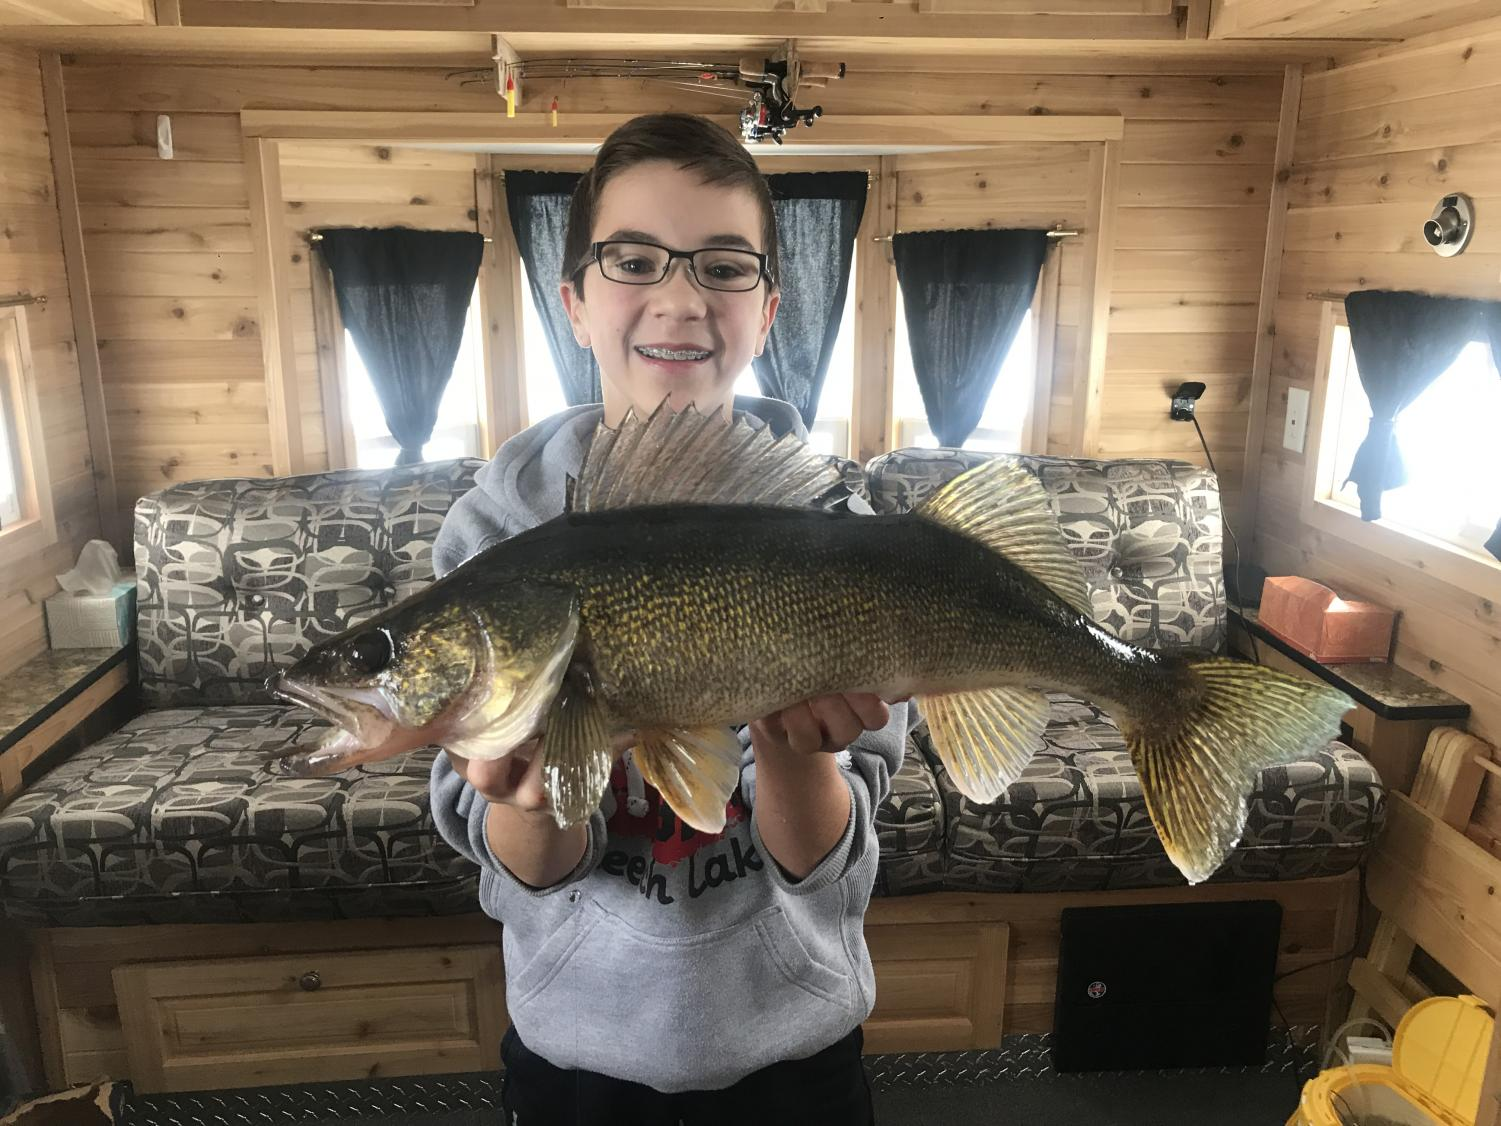 Travis Nelson is a freshman at SHS who enjoys the outdoors and who respects his sister.